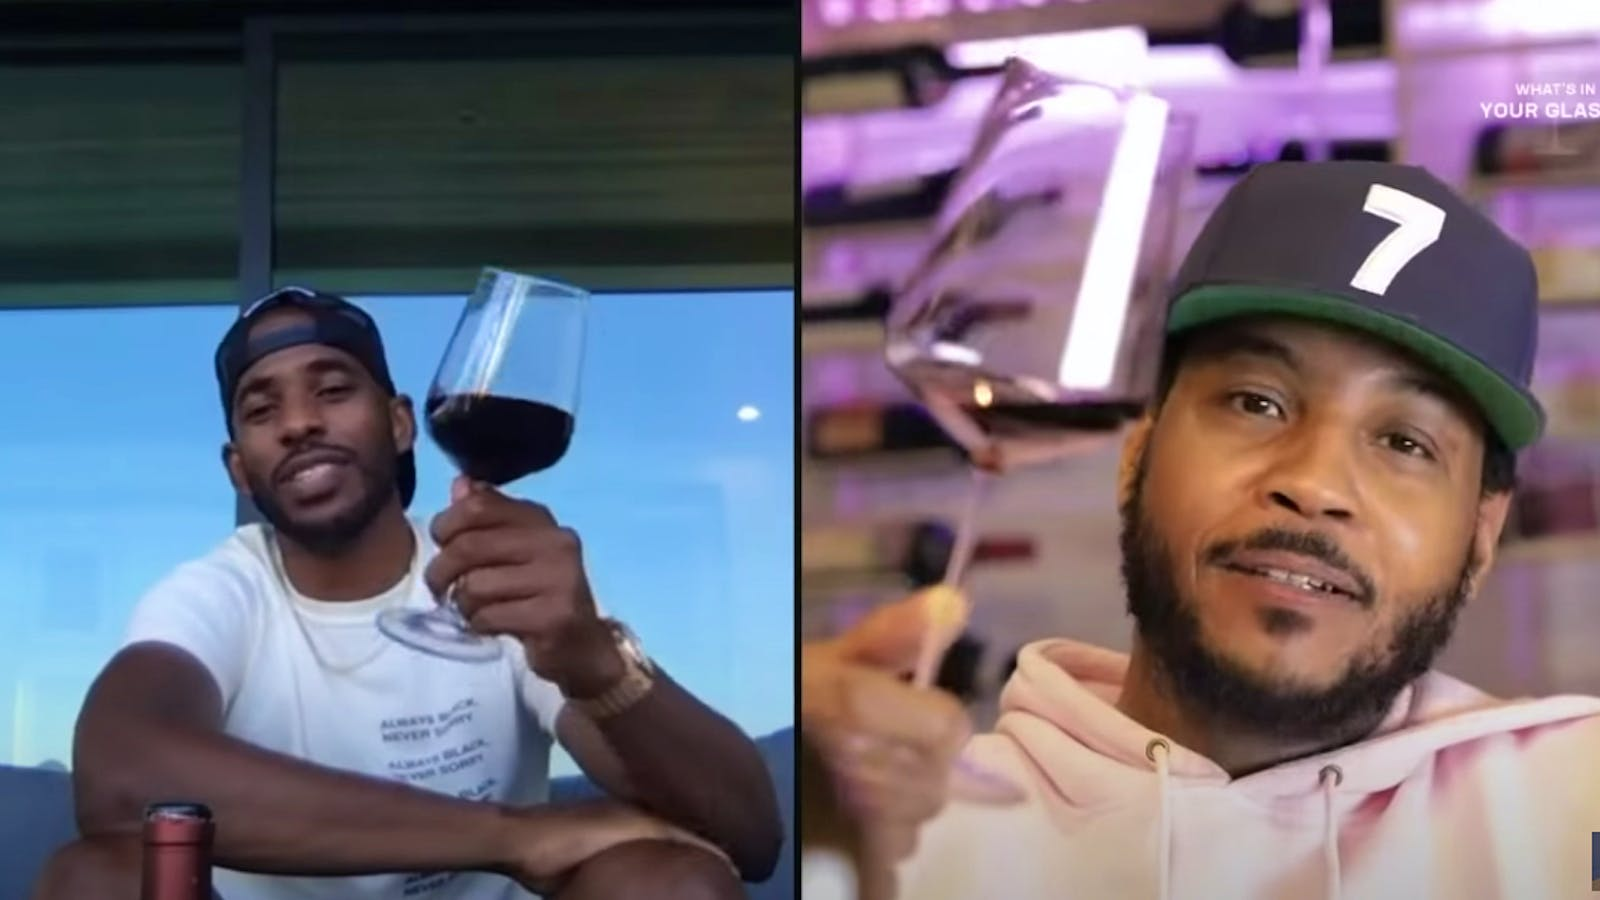 Talkin' Dom: Carmelo Anthony Hosts Snoop Dogg, LL Cool J, Chris Paul and More on 'What's in Your Glass?'